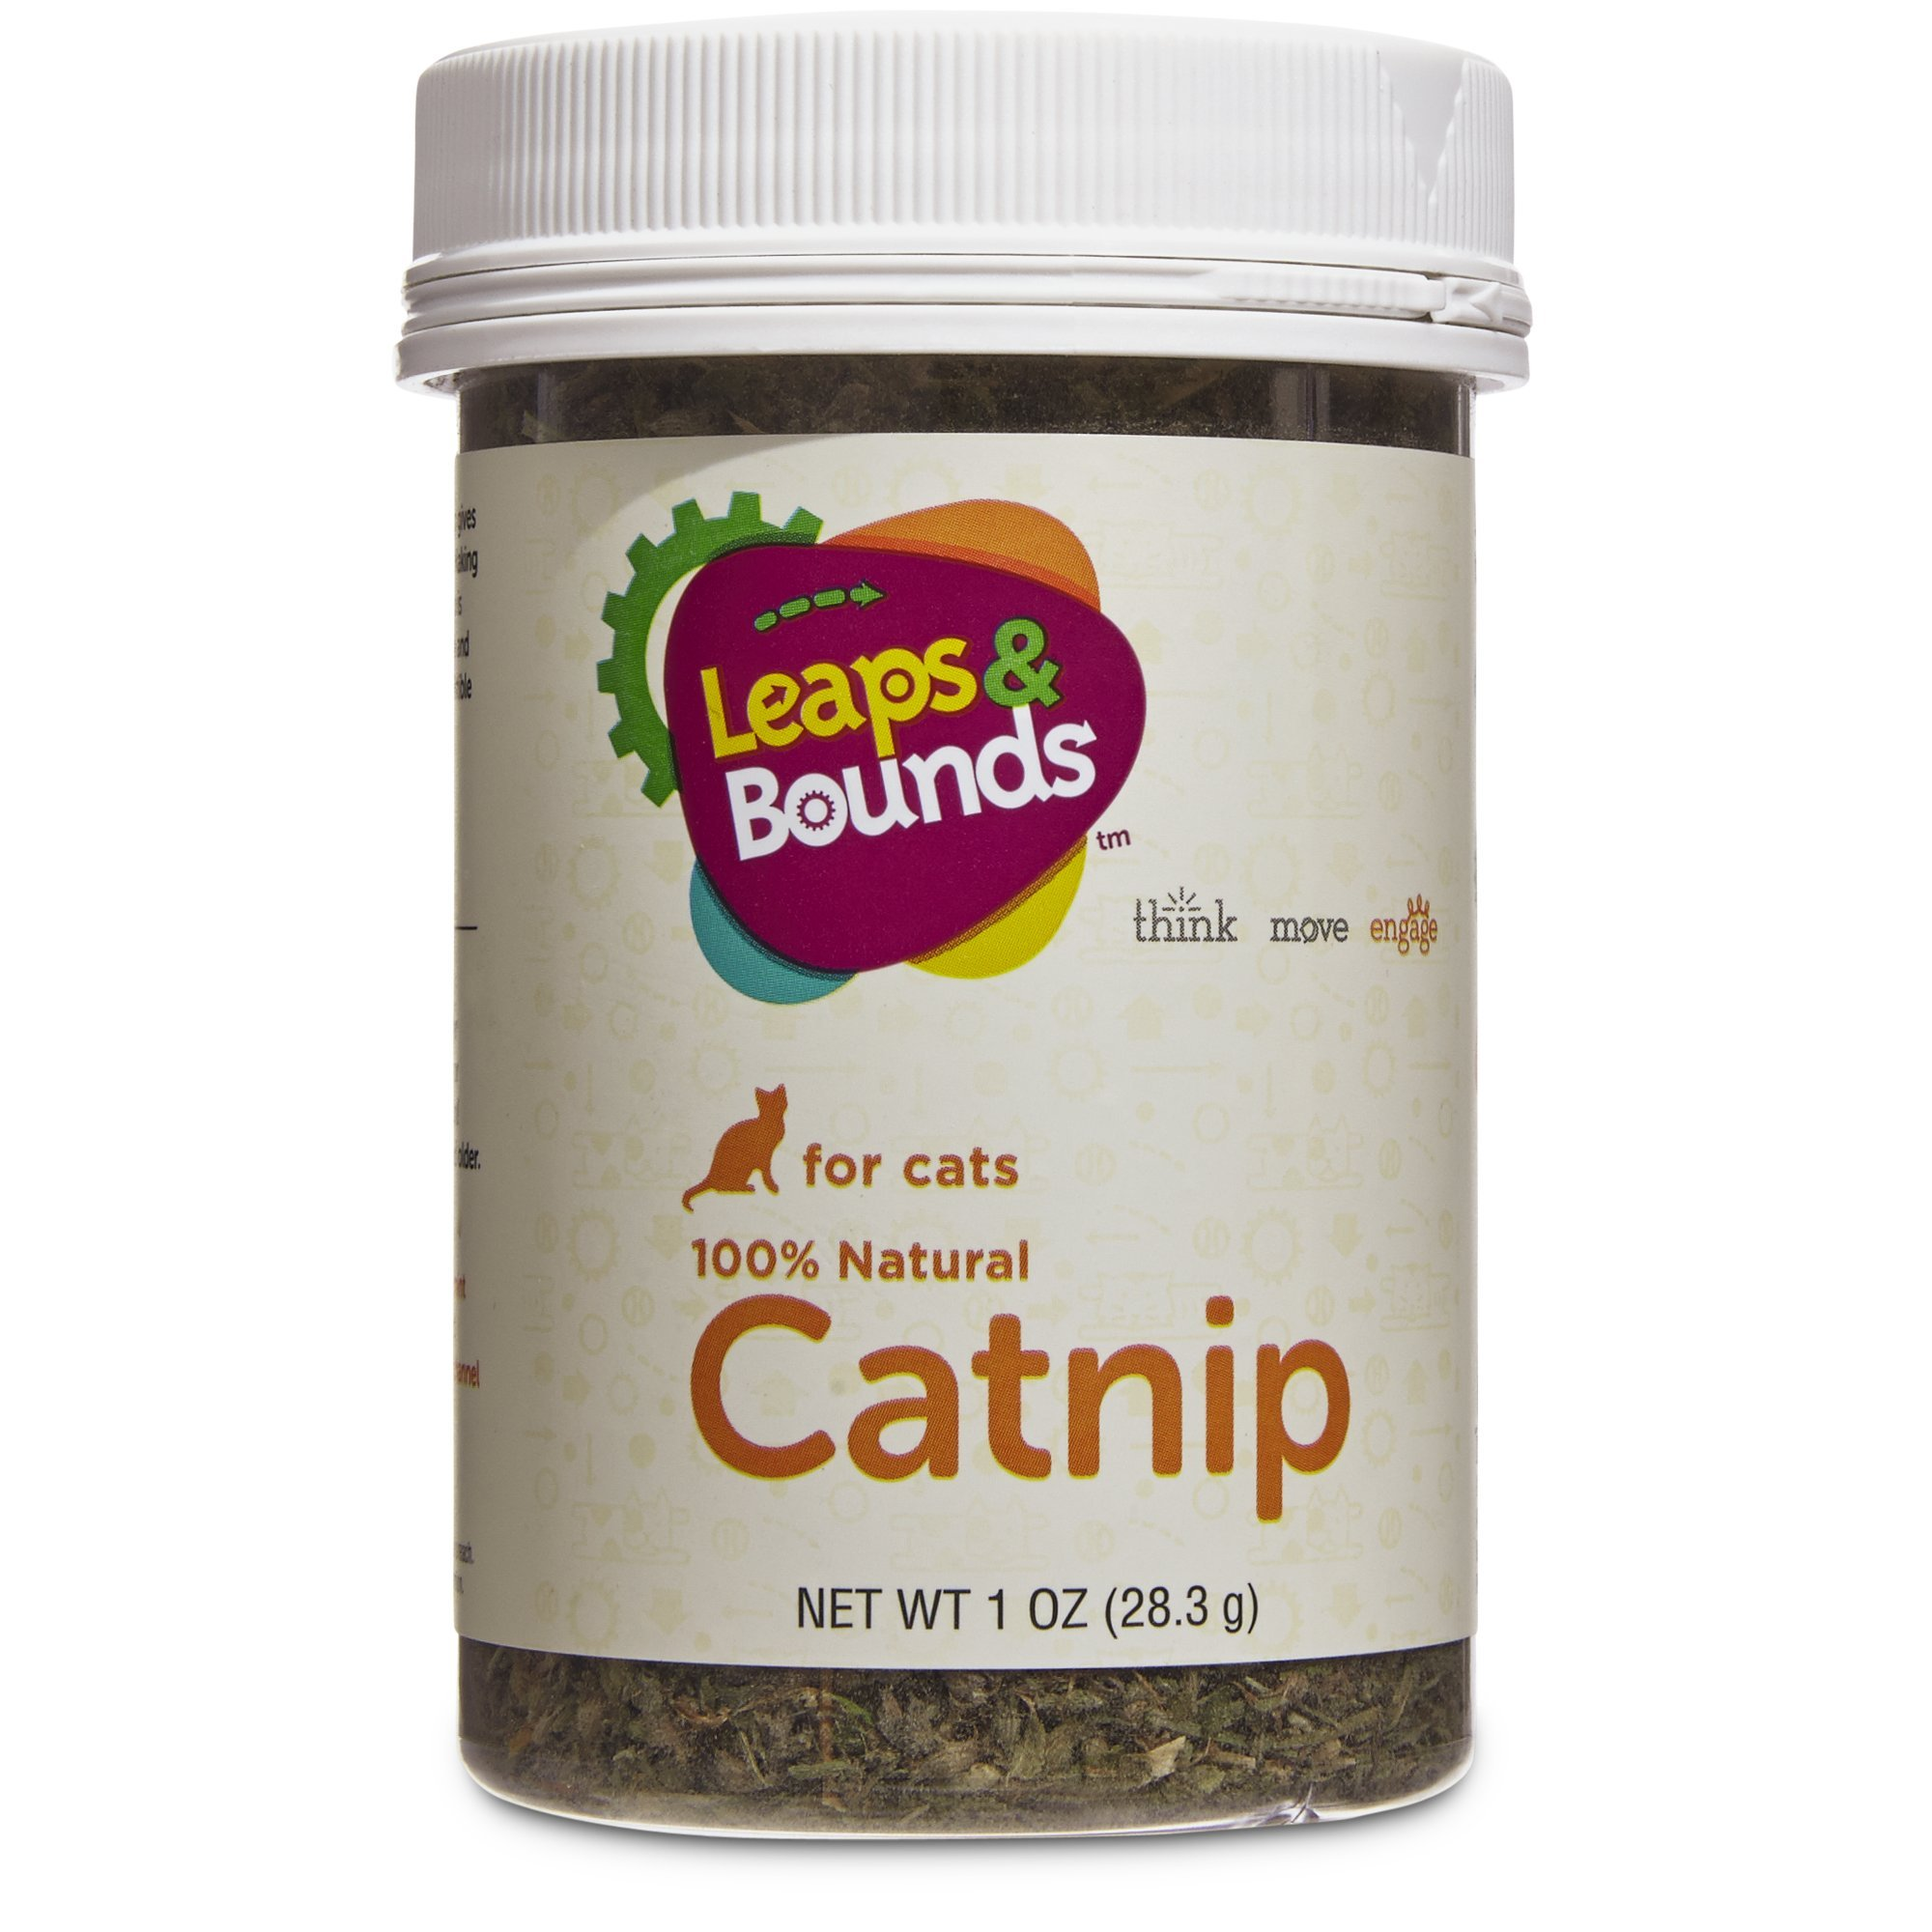 Leaps & Bounds Dried Catnip, 1 oz.